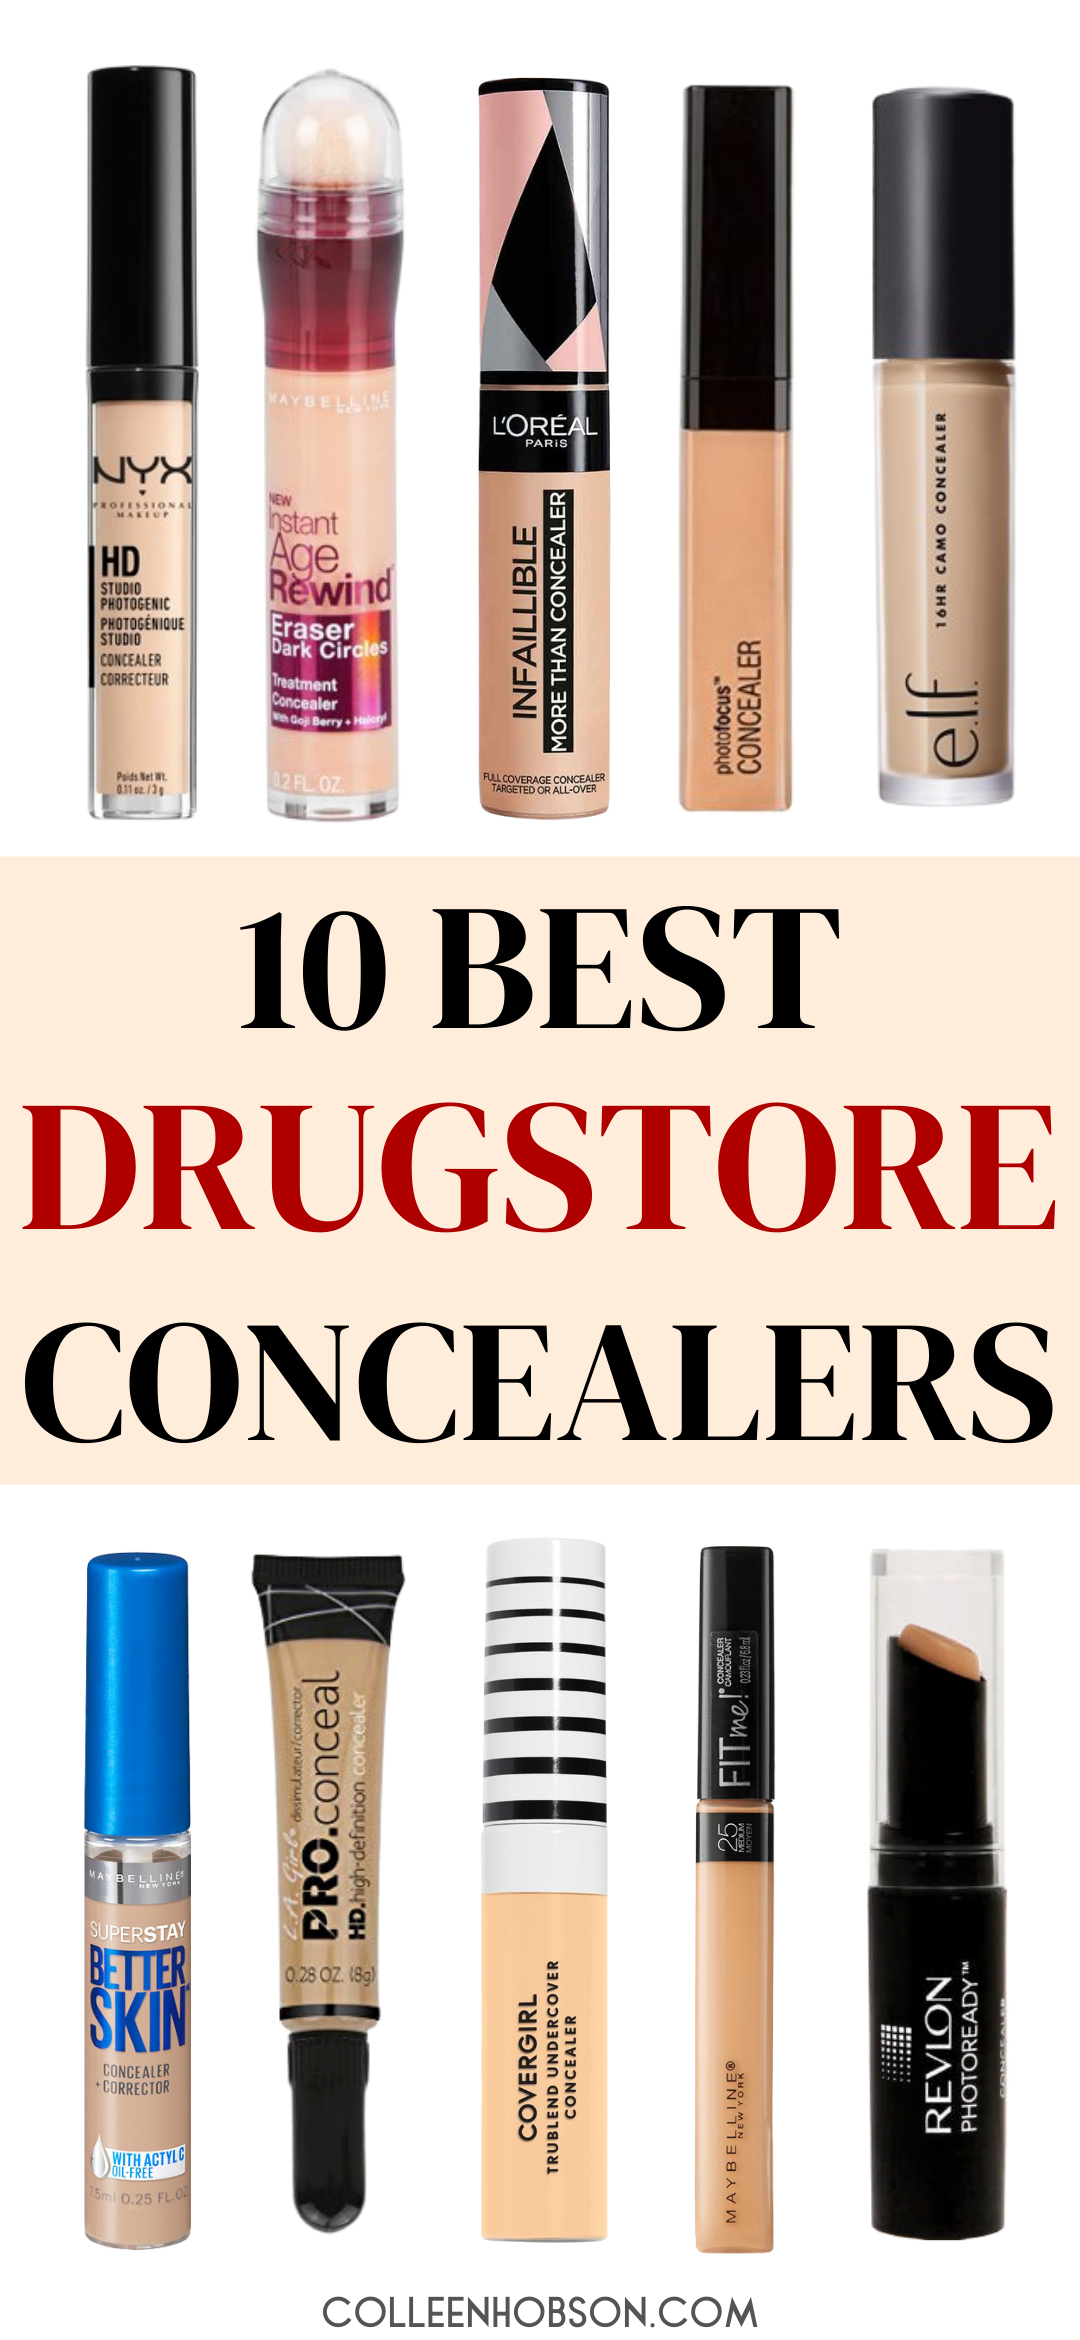 Top 10 Best Drugstore Concealers For Covering Dark Under Eye Circles And Blemishes Bes In 2020 Drugstore Concealer Best Drugstore Concealer Beauty Products Drugstore